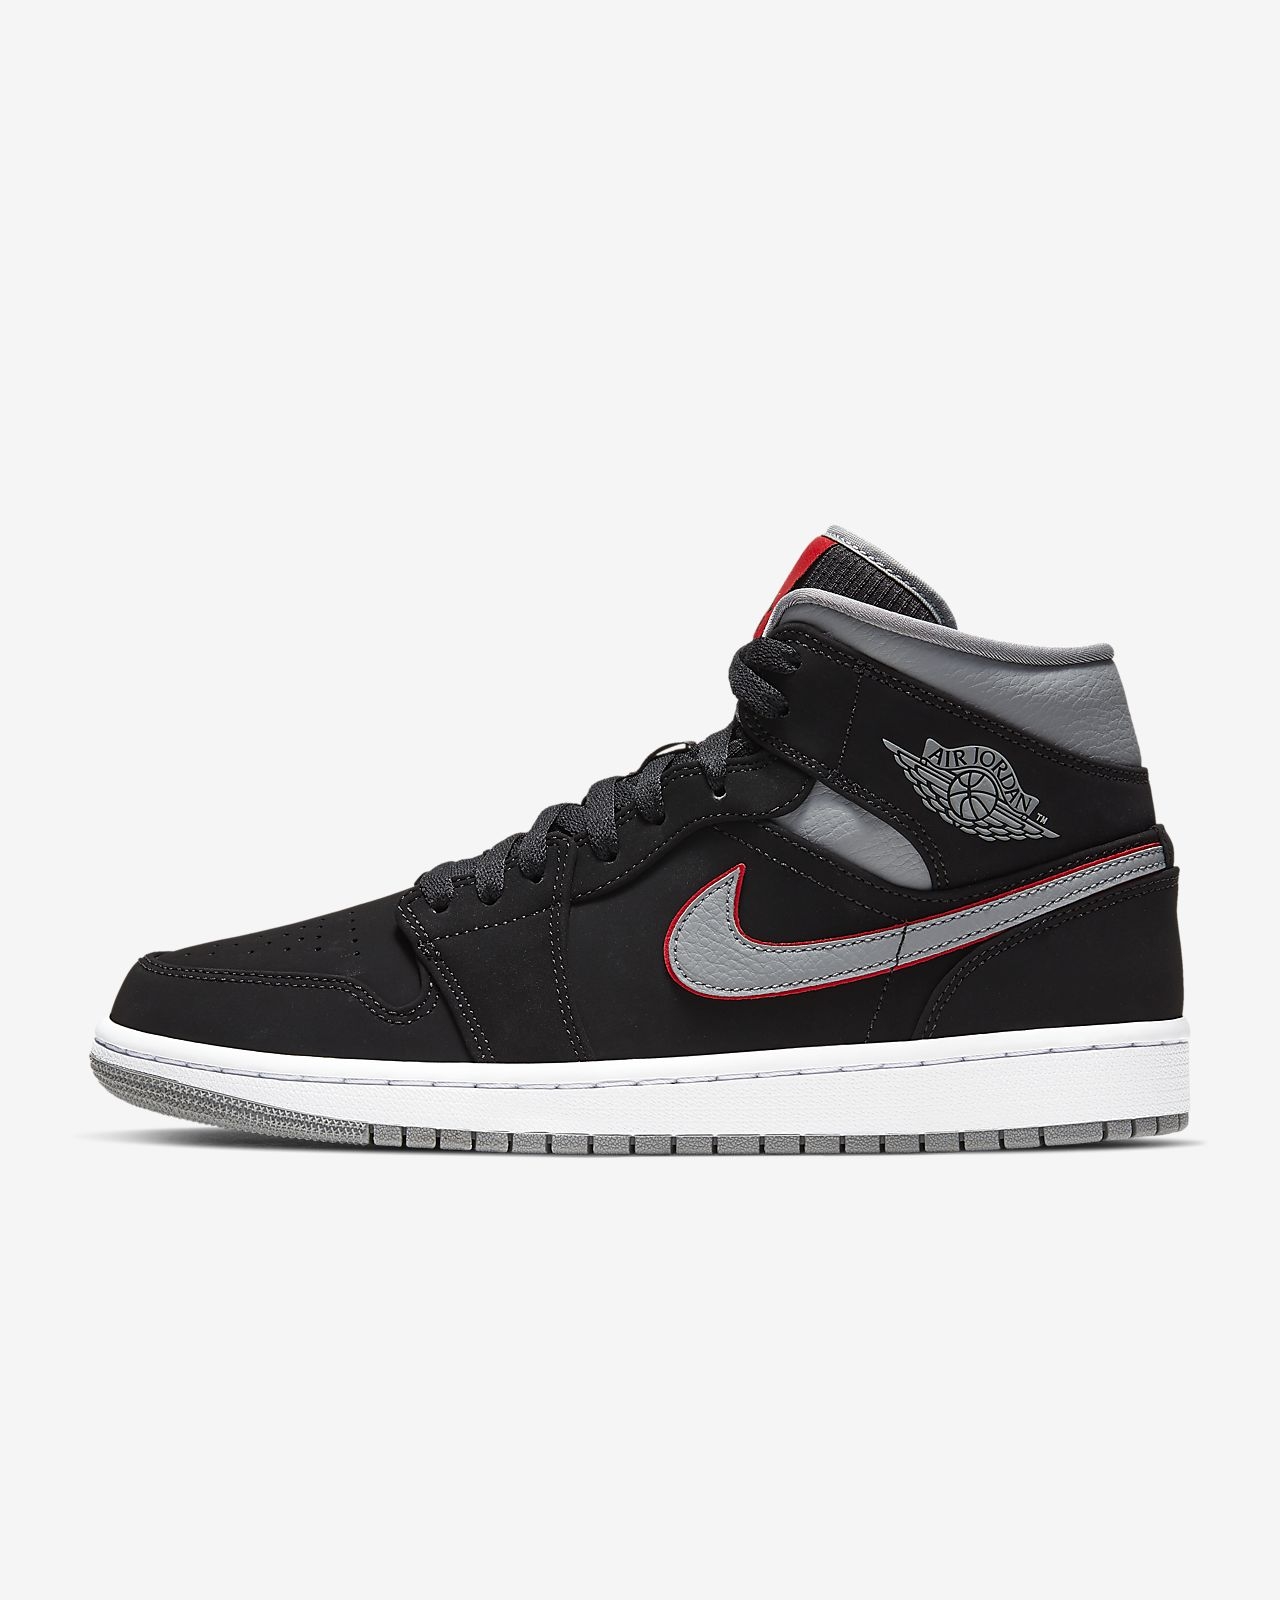 on sale 5551f 3dc50 Men s Shoe. Air Jordan 1 Mid